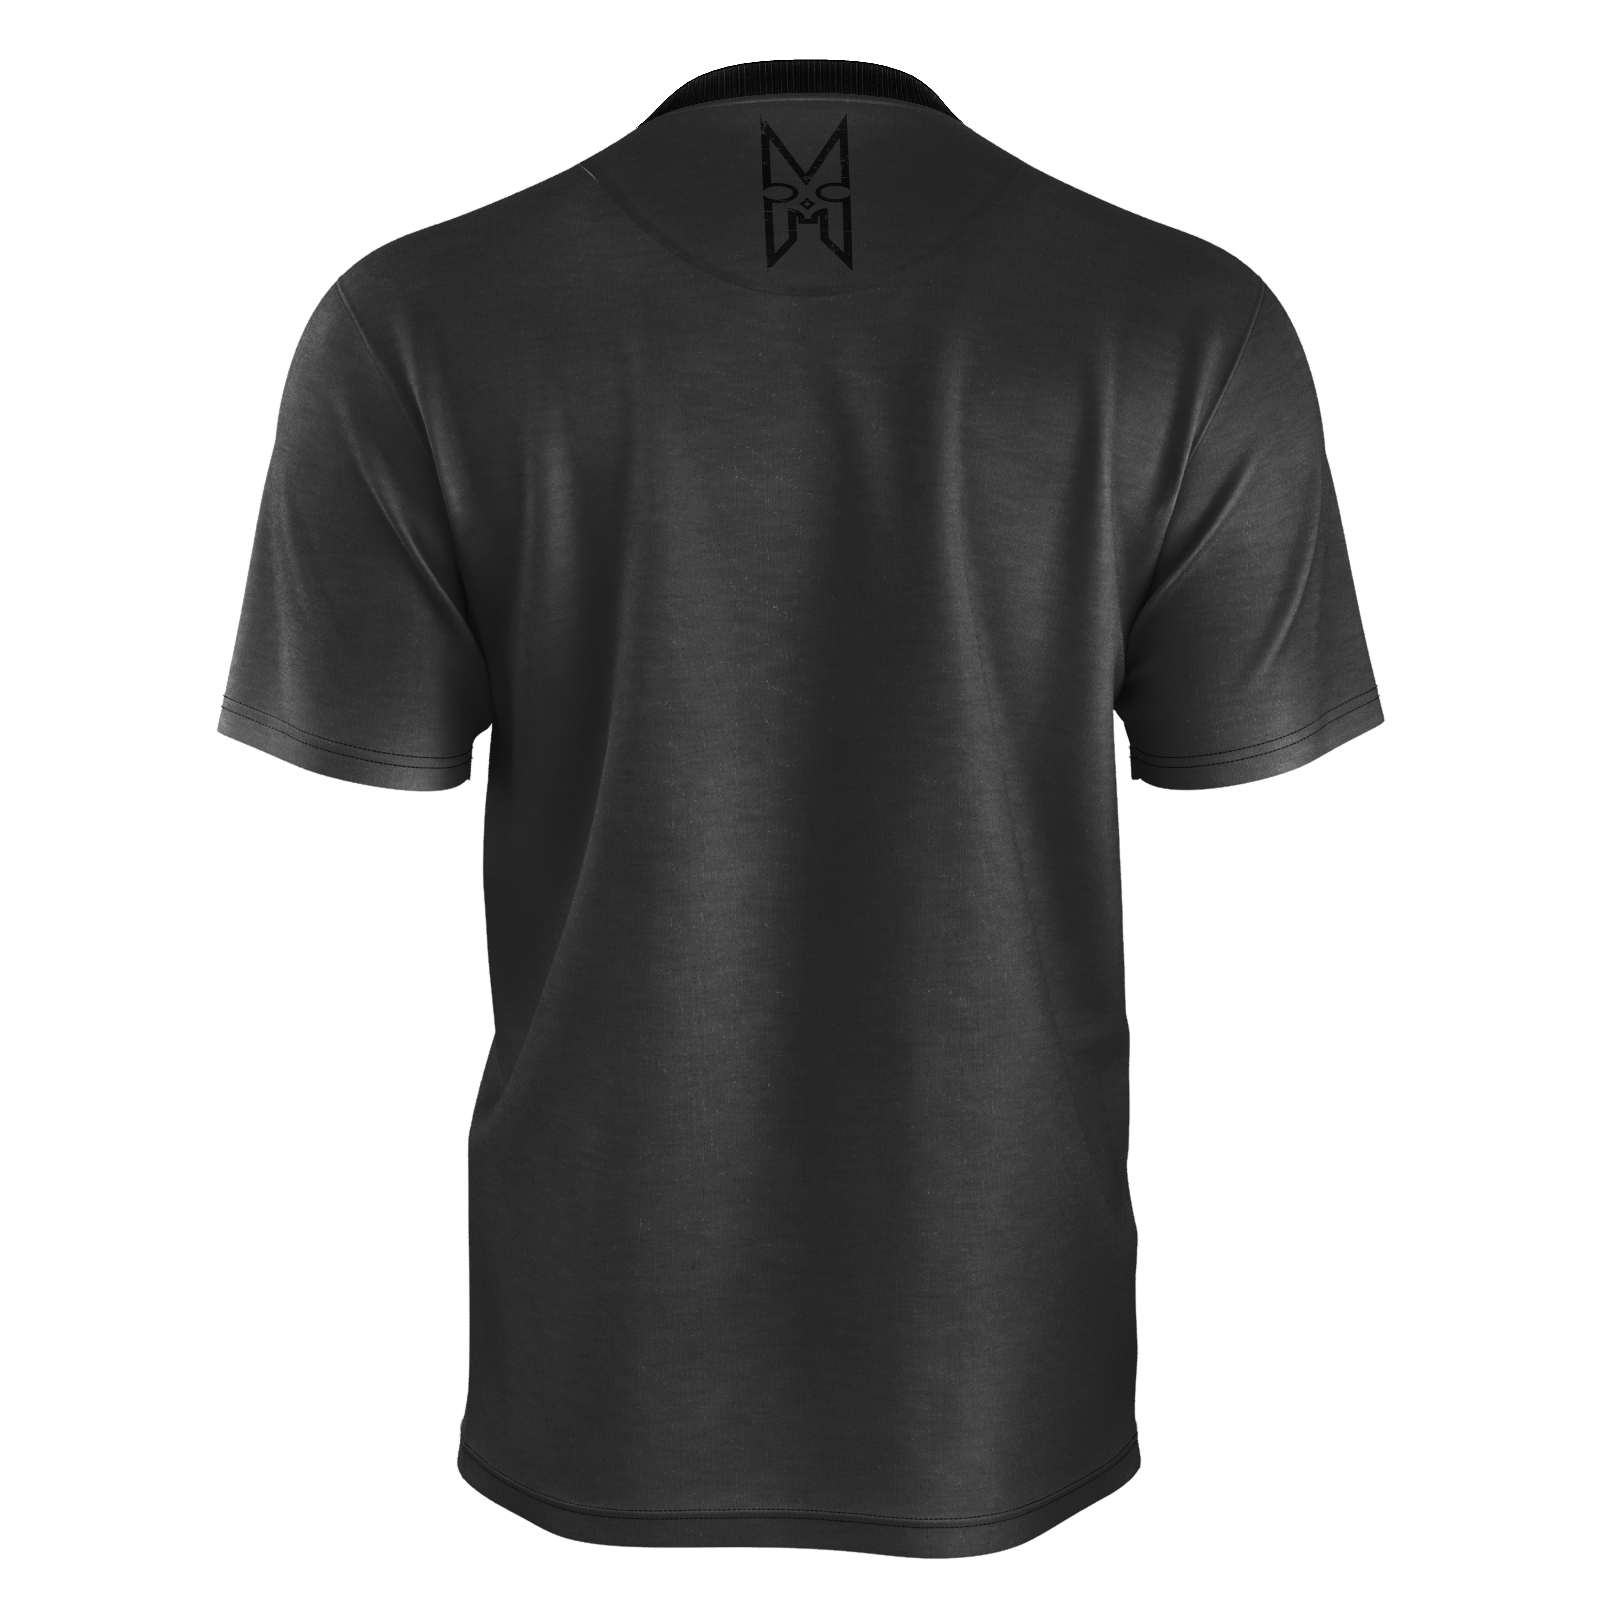 XM GYMWEAR BLACK DEAD LIFT T SHIRT